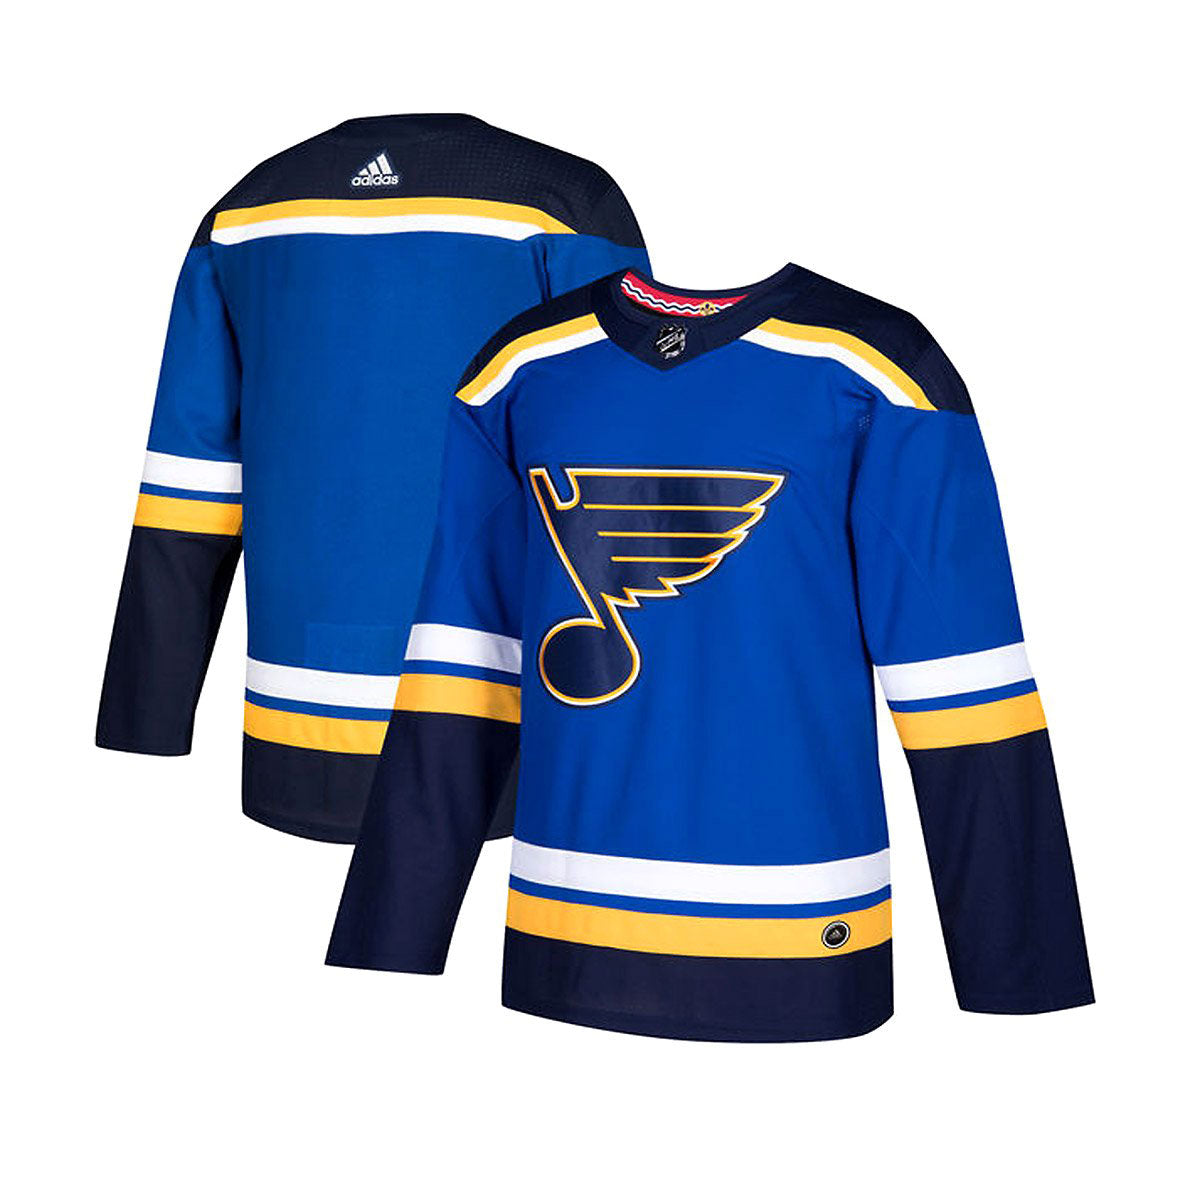 St. Louis Blues Home Adidas Authentic Senior Jersey